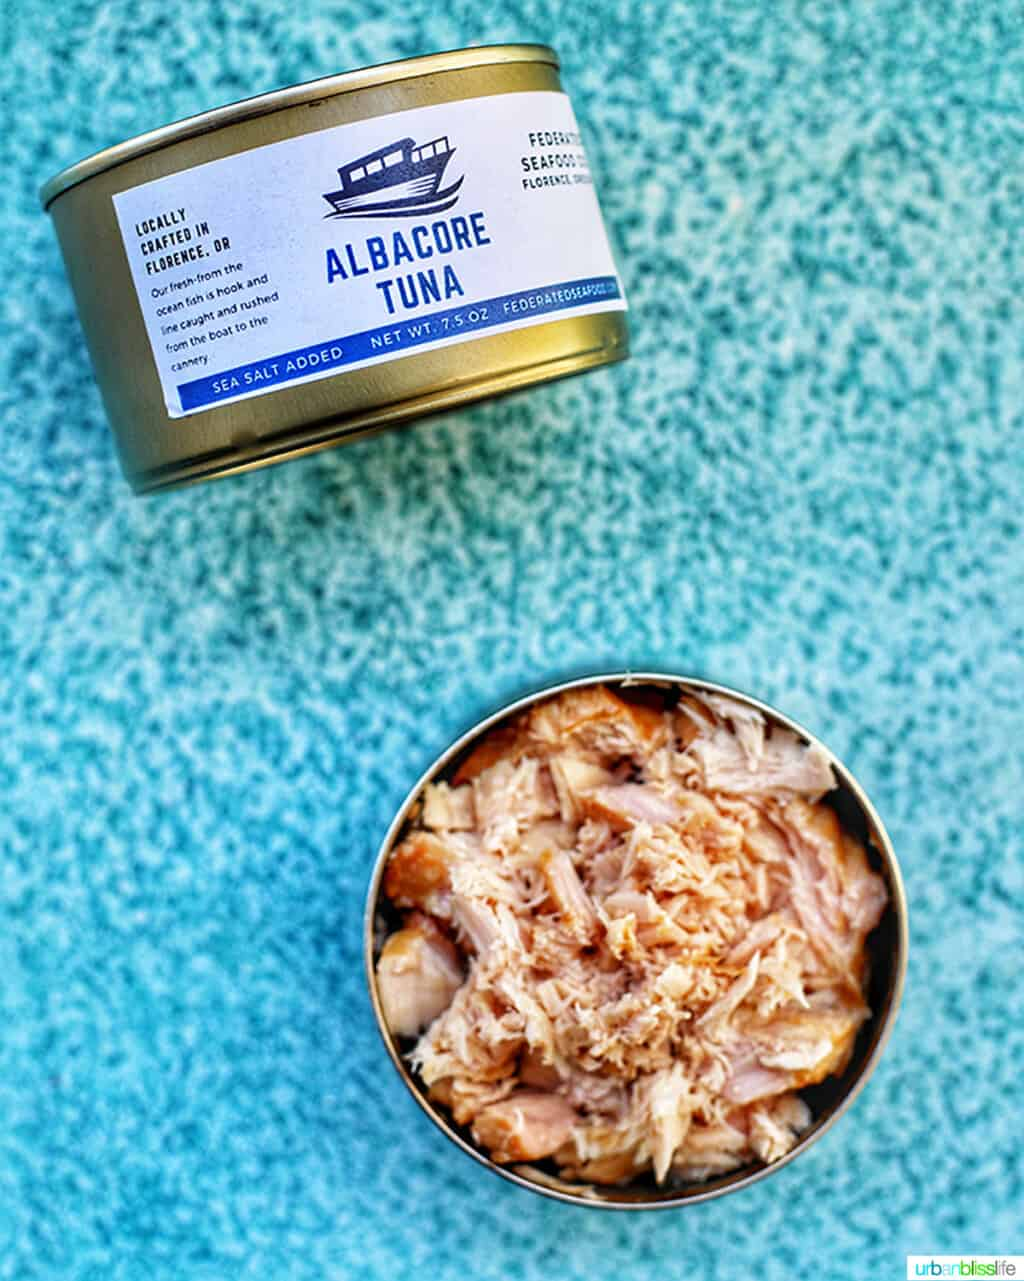 canned albacore tuna on blue background